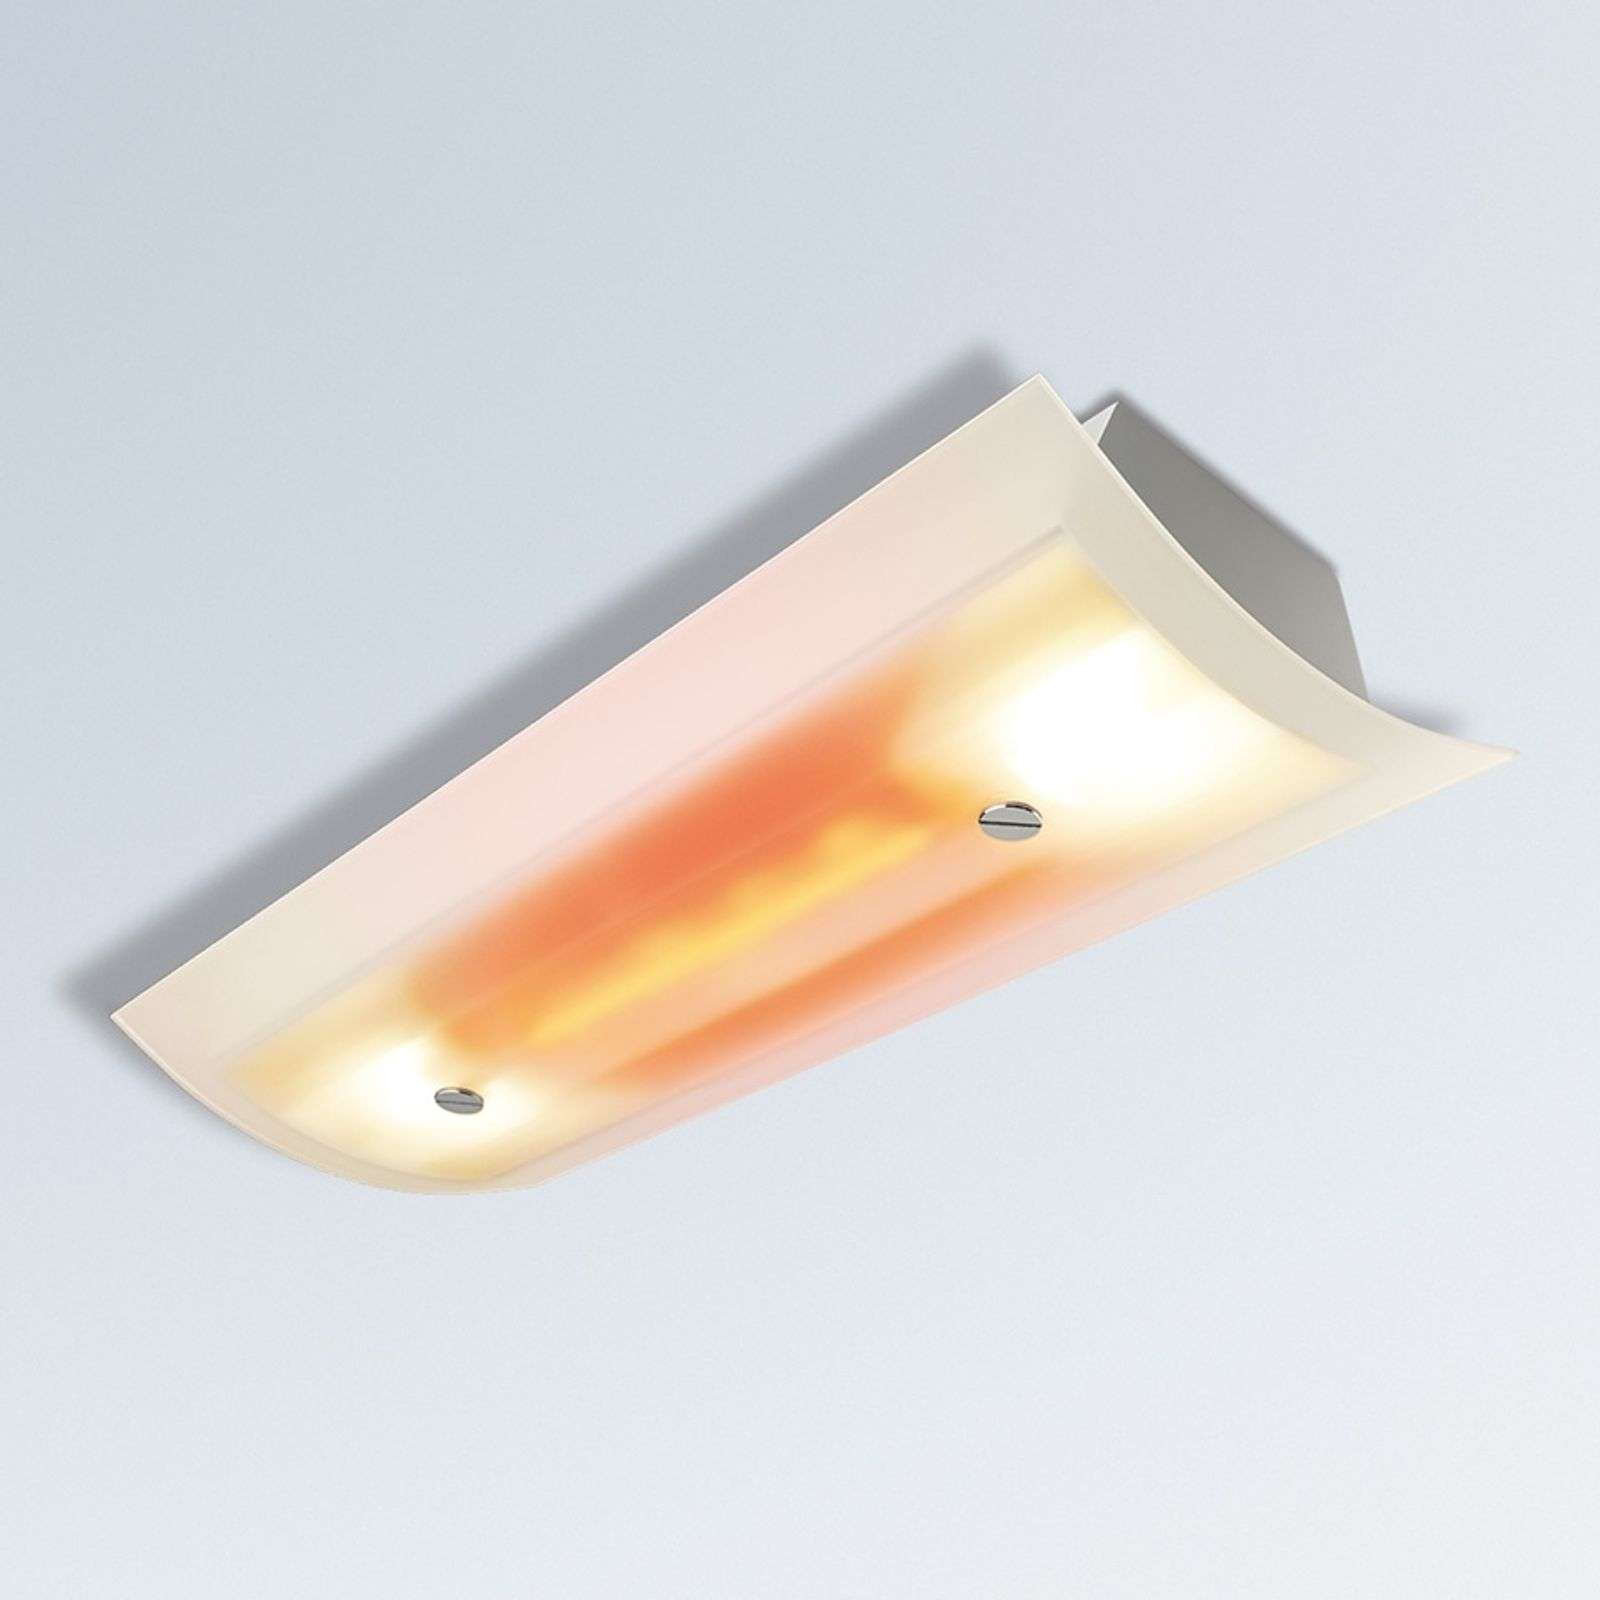 Warme halogeenplafondlamp SUNSITIVE design